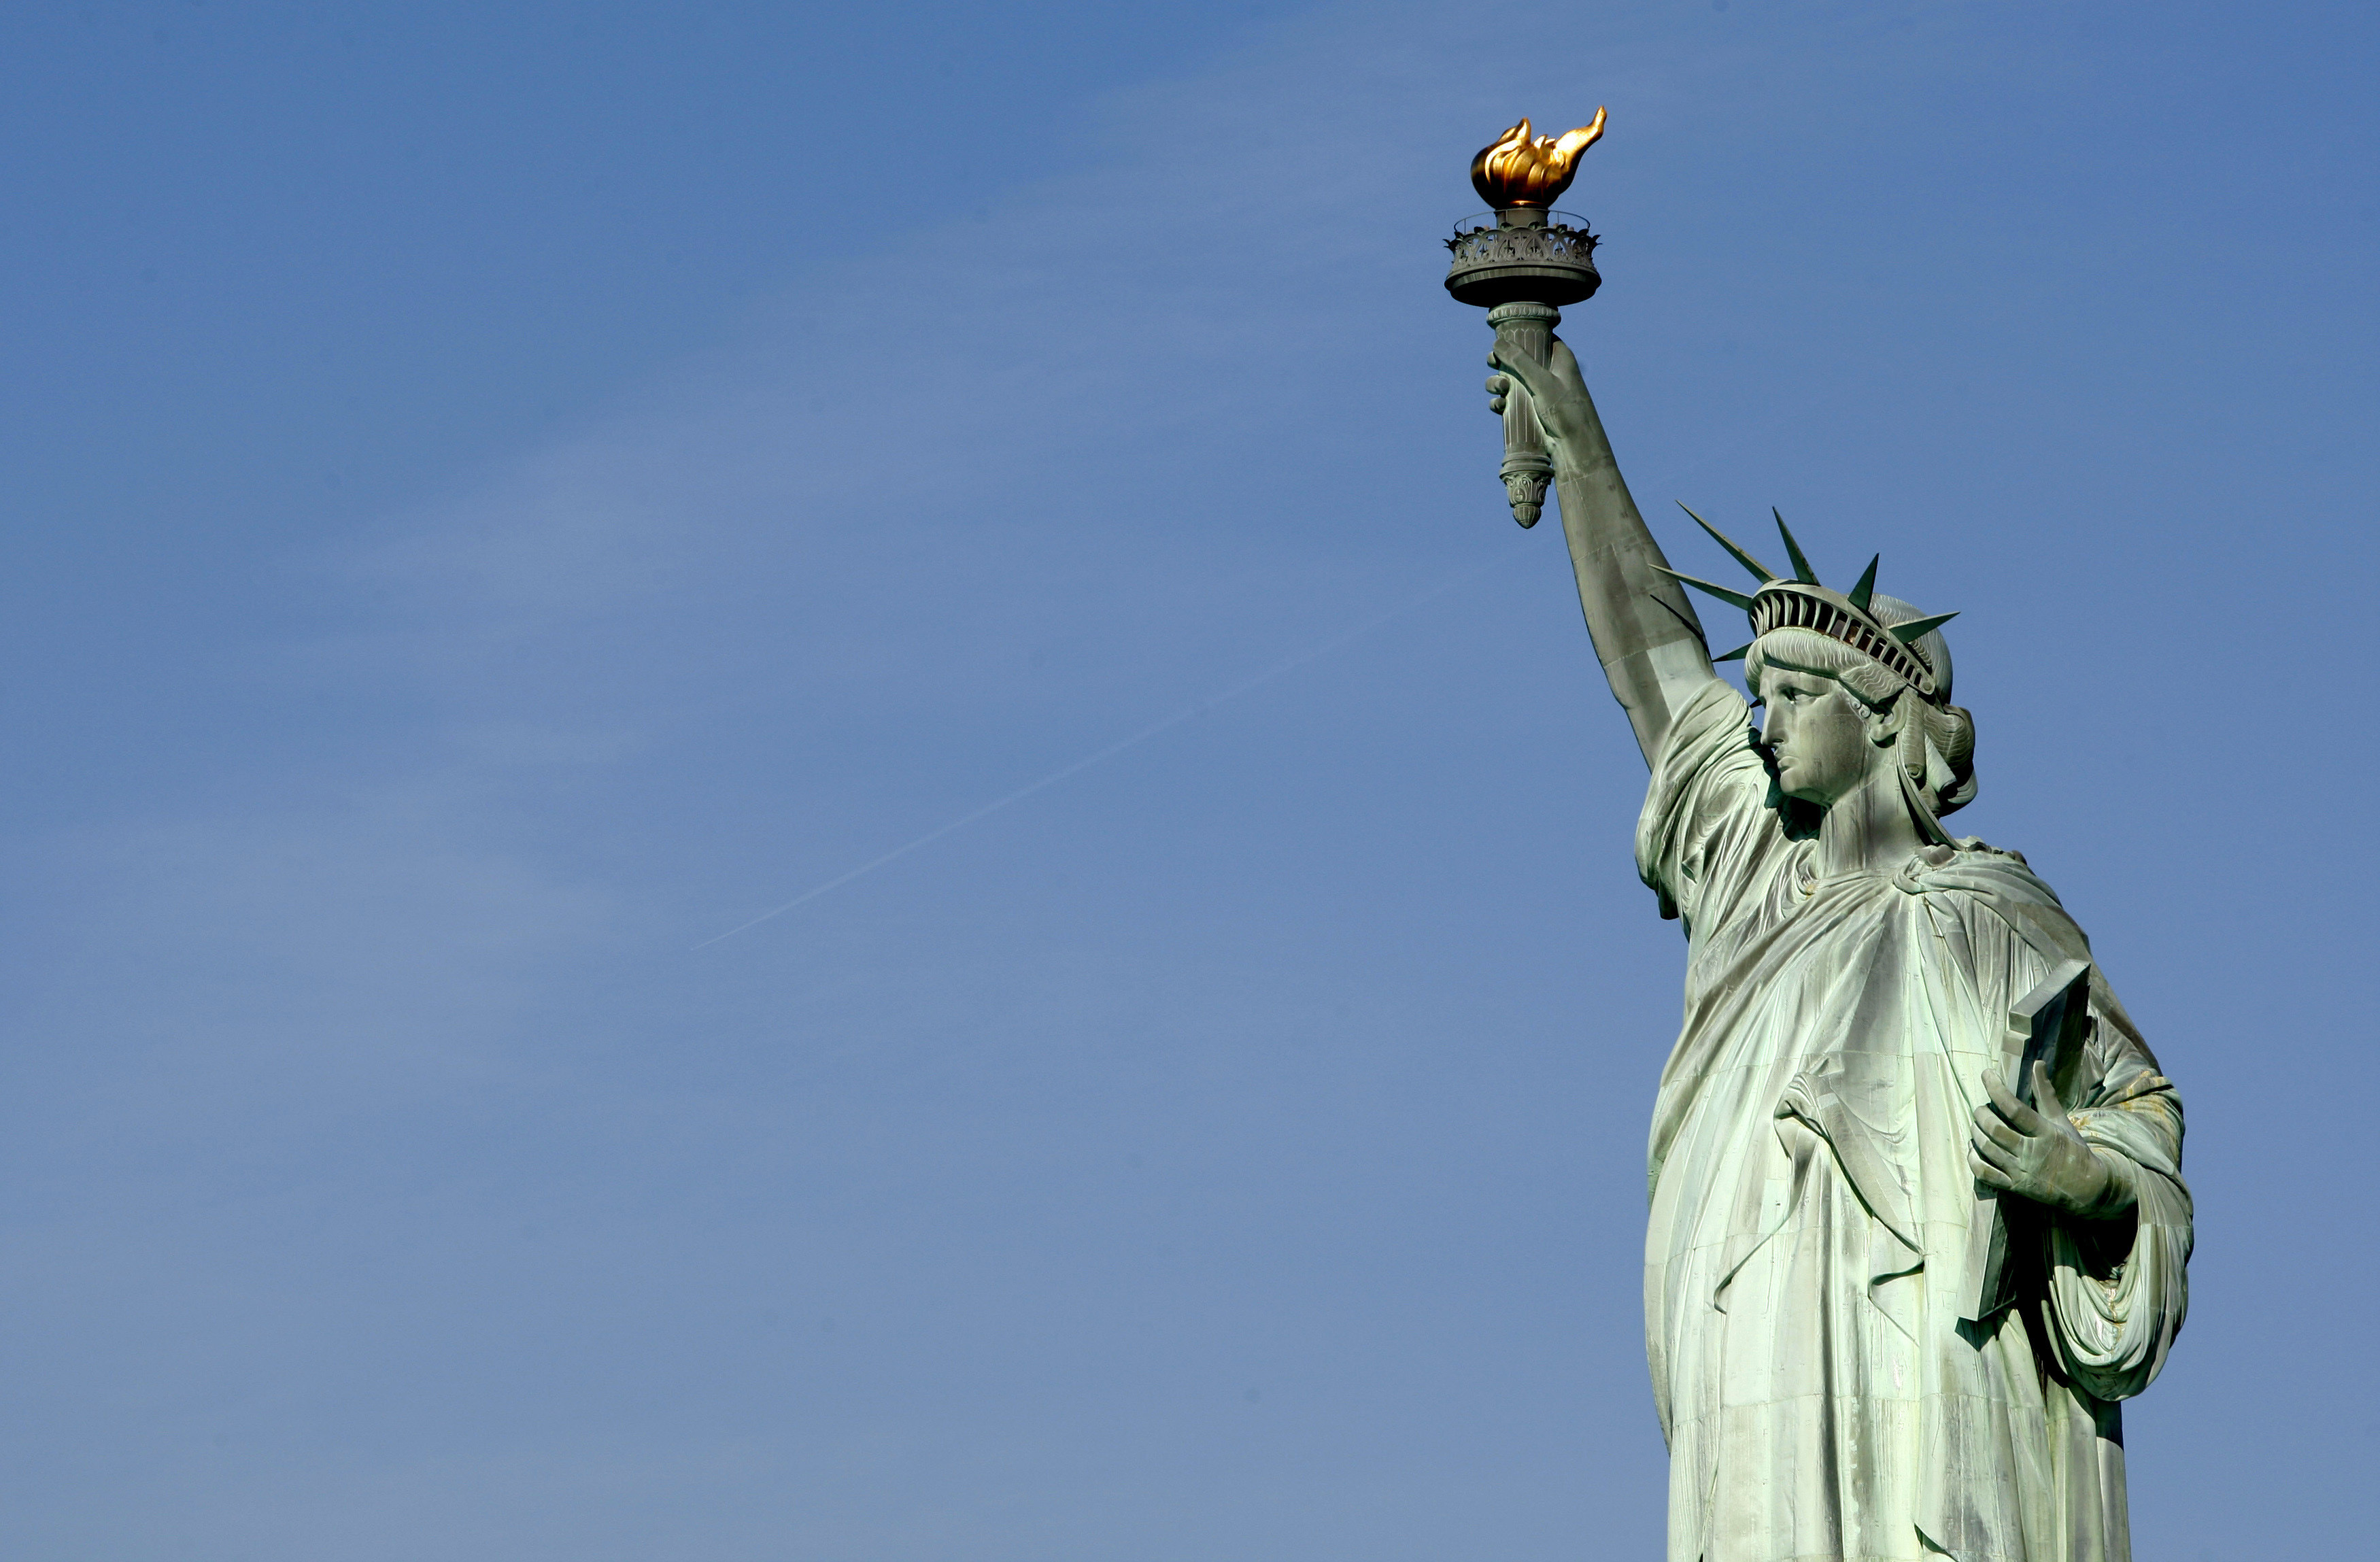 The Statue of Liberty in New York harbor is seen in this photograph taken May 20, 2009. Visitors to the statue will again be allowed to climb to the Statue's crown which will re-open to the public on July 4th, 2009, after having been closed since the September 11, 2001 attacks.  REUTERS/Mike Segar   (UNITED STATES SOCIETY) - GM1E55L02NS01